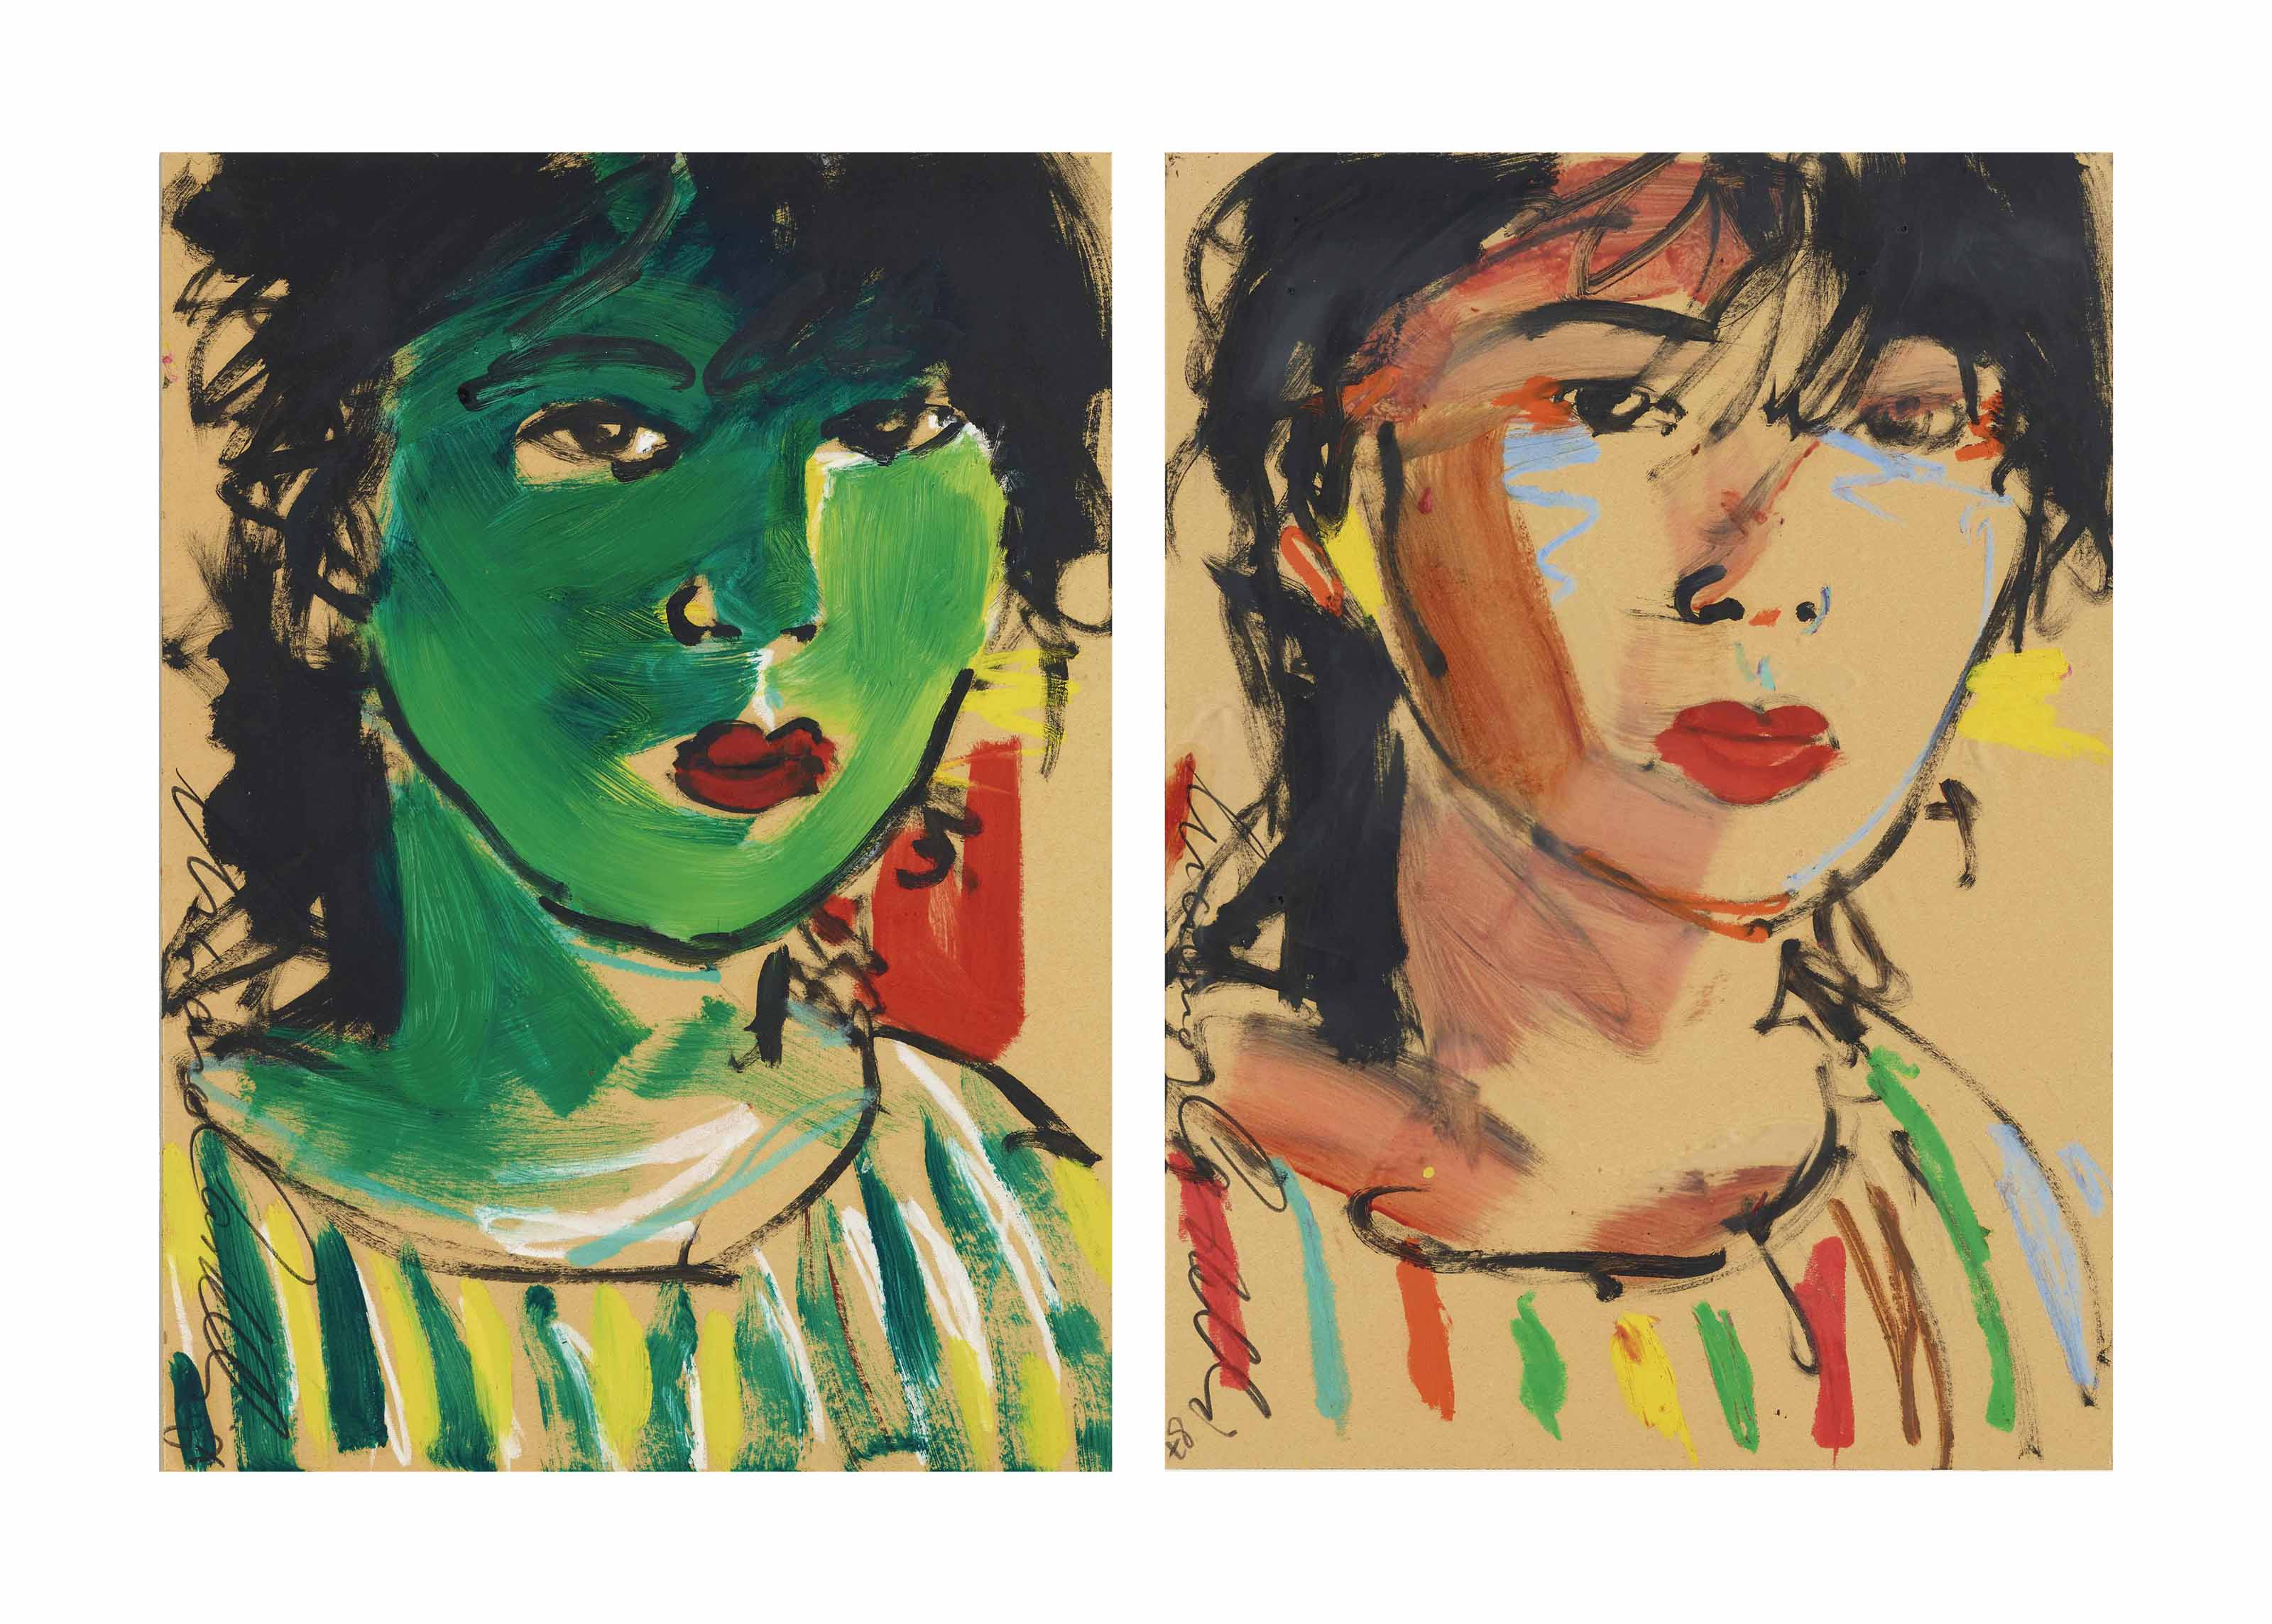 2 Frauenportraits, 1987